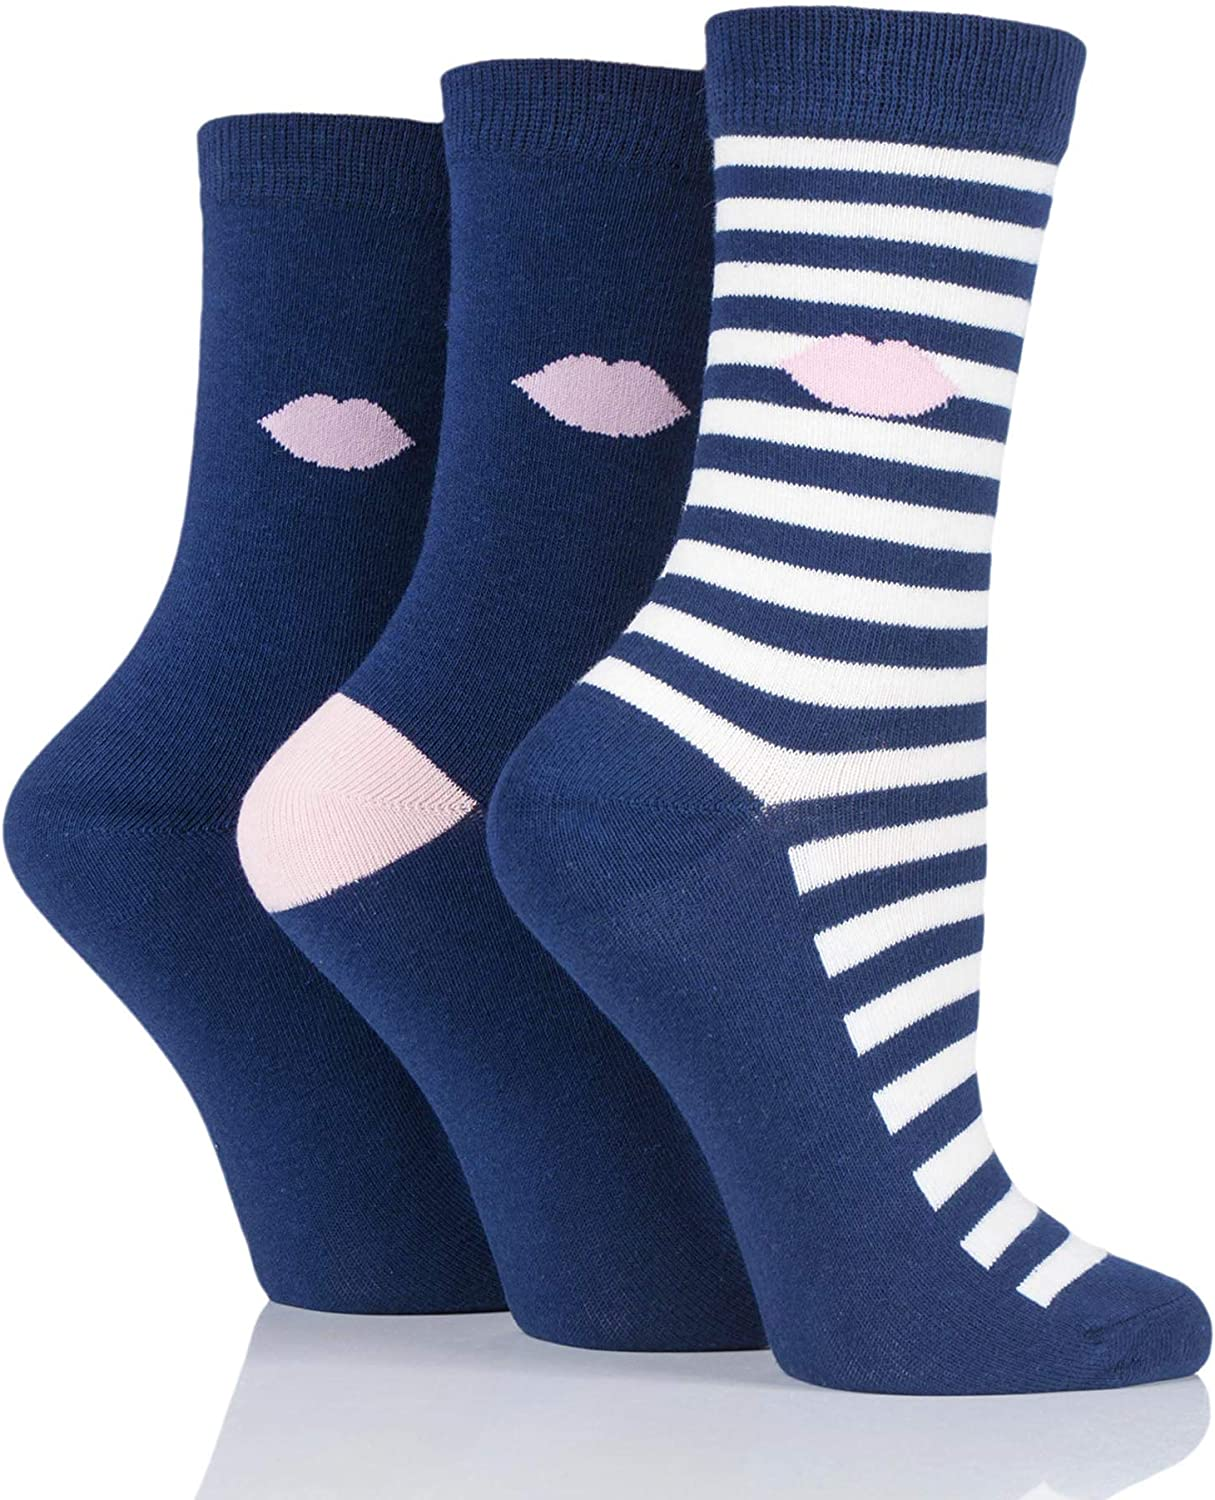 LuLu Guinness Womens Kisses Cotton Socks Pack of 3